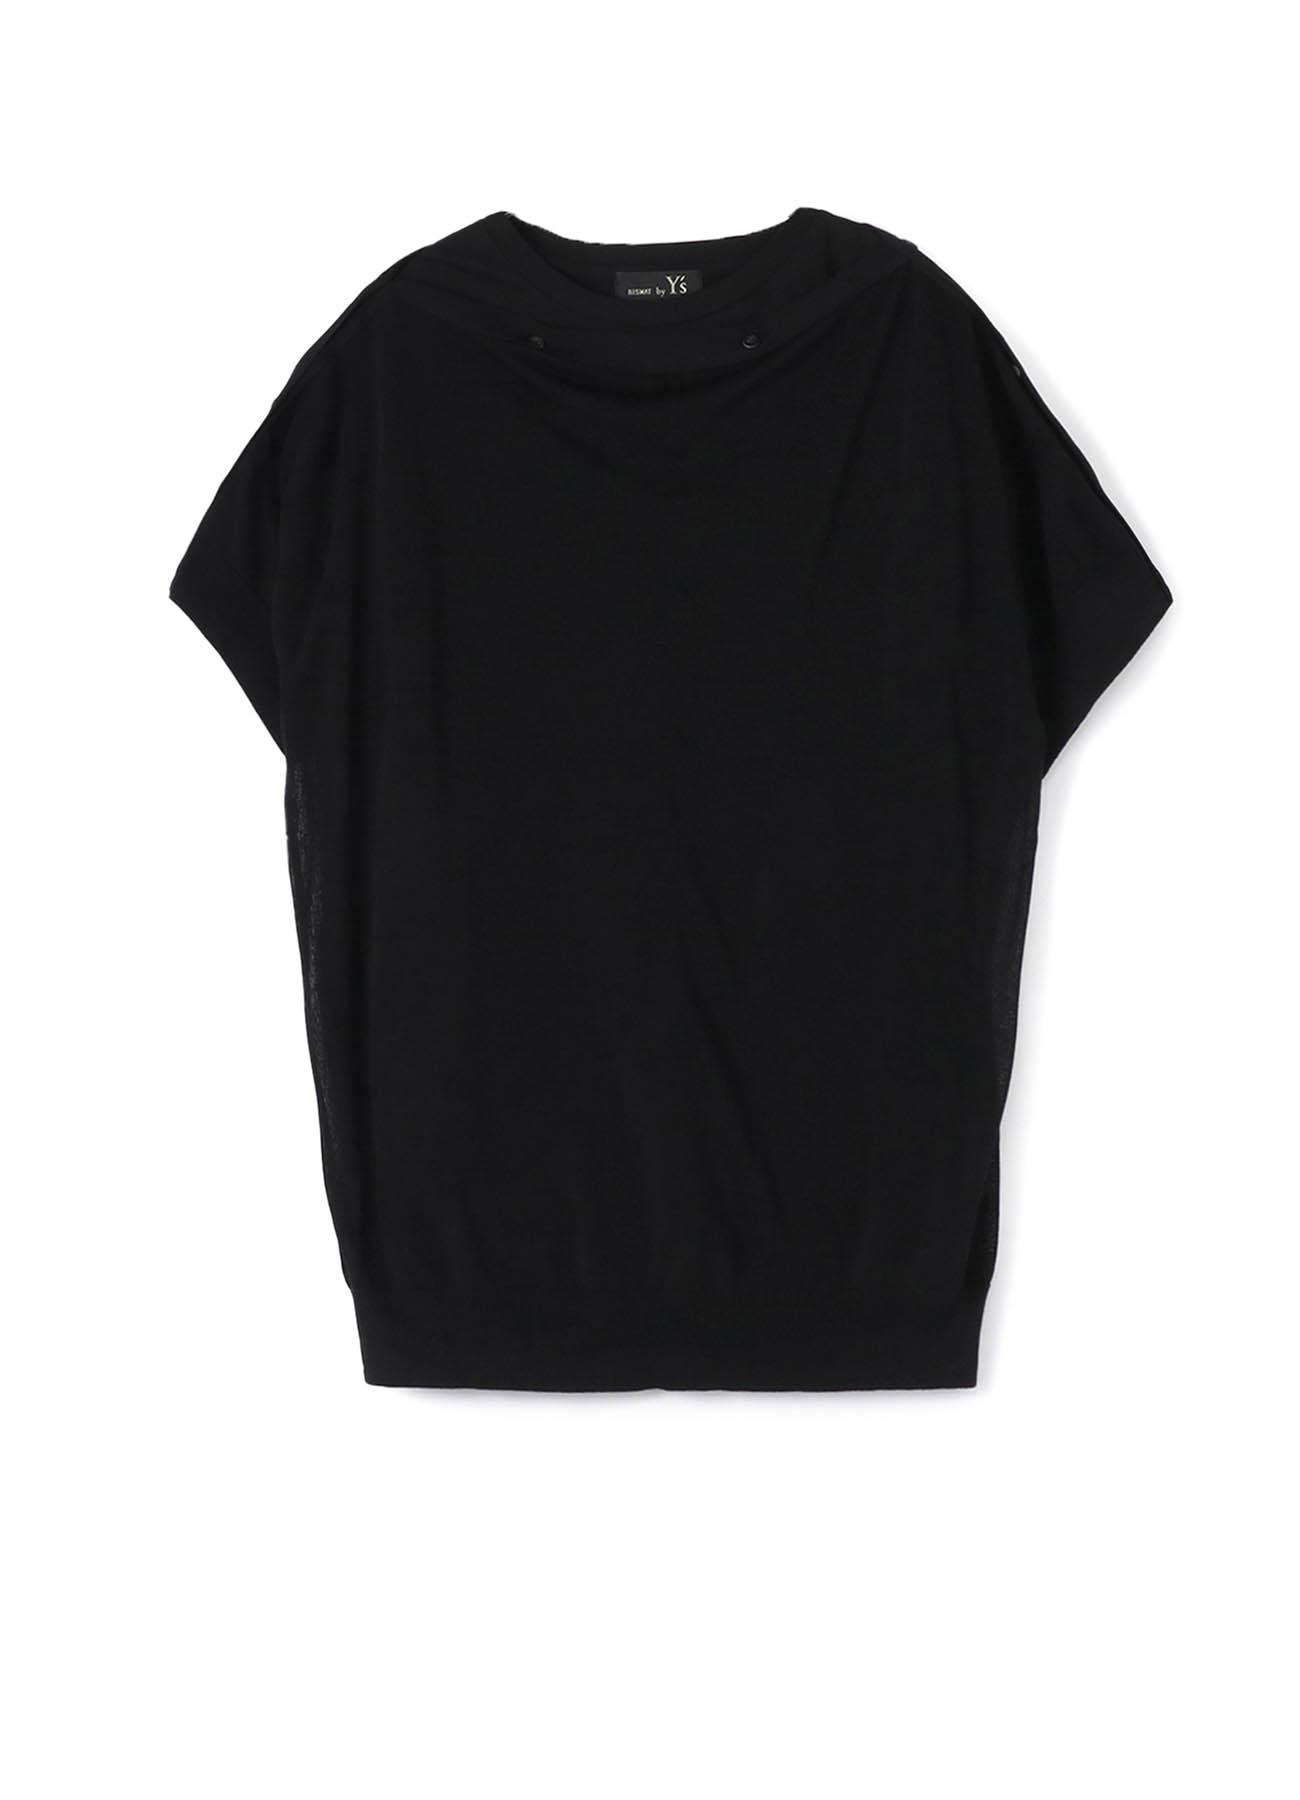 1/52Ry/Ny14G2P PLAIN STITCH BUTTON OPEN SHORT SLEEVE T